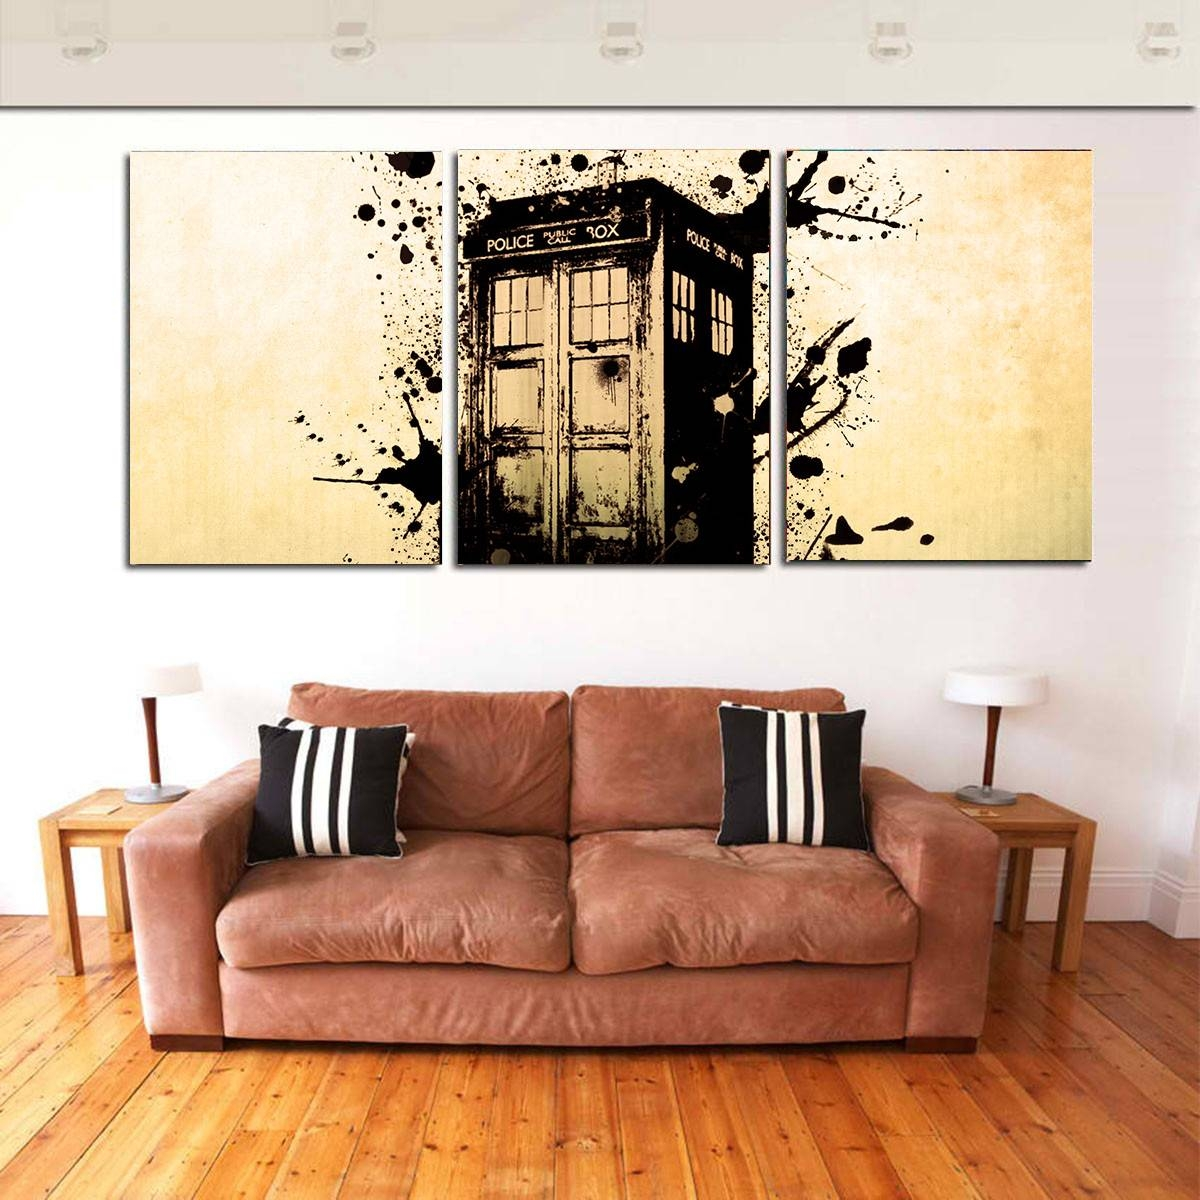 Doctor Who Wall Art – Album On Imgur With Regard To Most Current Doctor Who Wall Art (View 27 of 33)